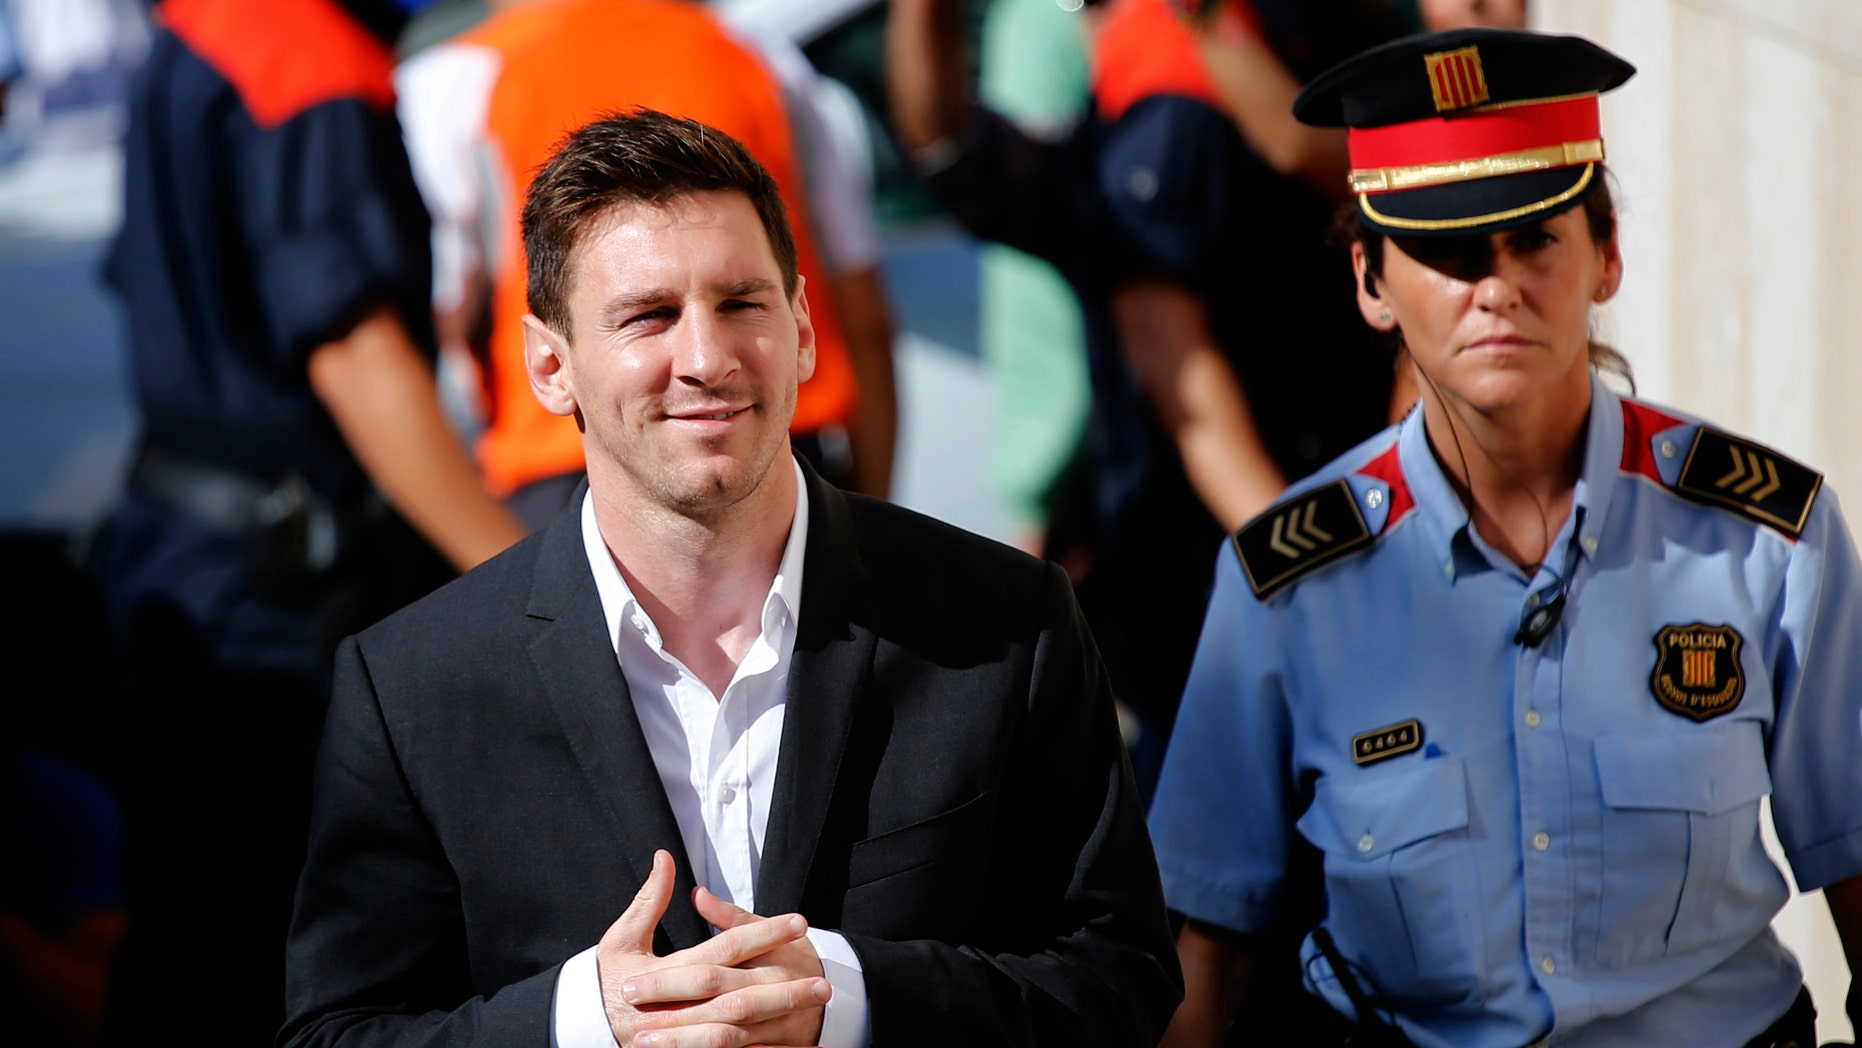 FILE - In this Sept. 27, 2013 file photo, FC Barcelona star Lionel Messi, left, arrives at a court to answer questions in a tax fraud case in Gava, near Barcelona, Spain. Spanish court officials say Lionel Messi's tax fraud trial has been set for May 31-June 3, 2016. Messi and his father, Jorge Horacio Messi, have been charged with three counts of tax fraud and could be sentenced to nearly two years in prison if found guilty. They are accused of defrauding Spain's tax office of 4.1 million euros ($4.4 million) in unpaid taxes from 2007-09. (AP Photo/Emilio Morenatti, File)